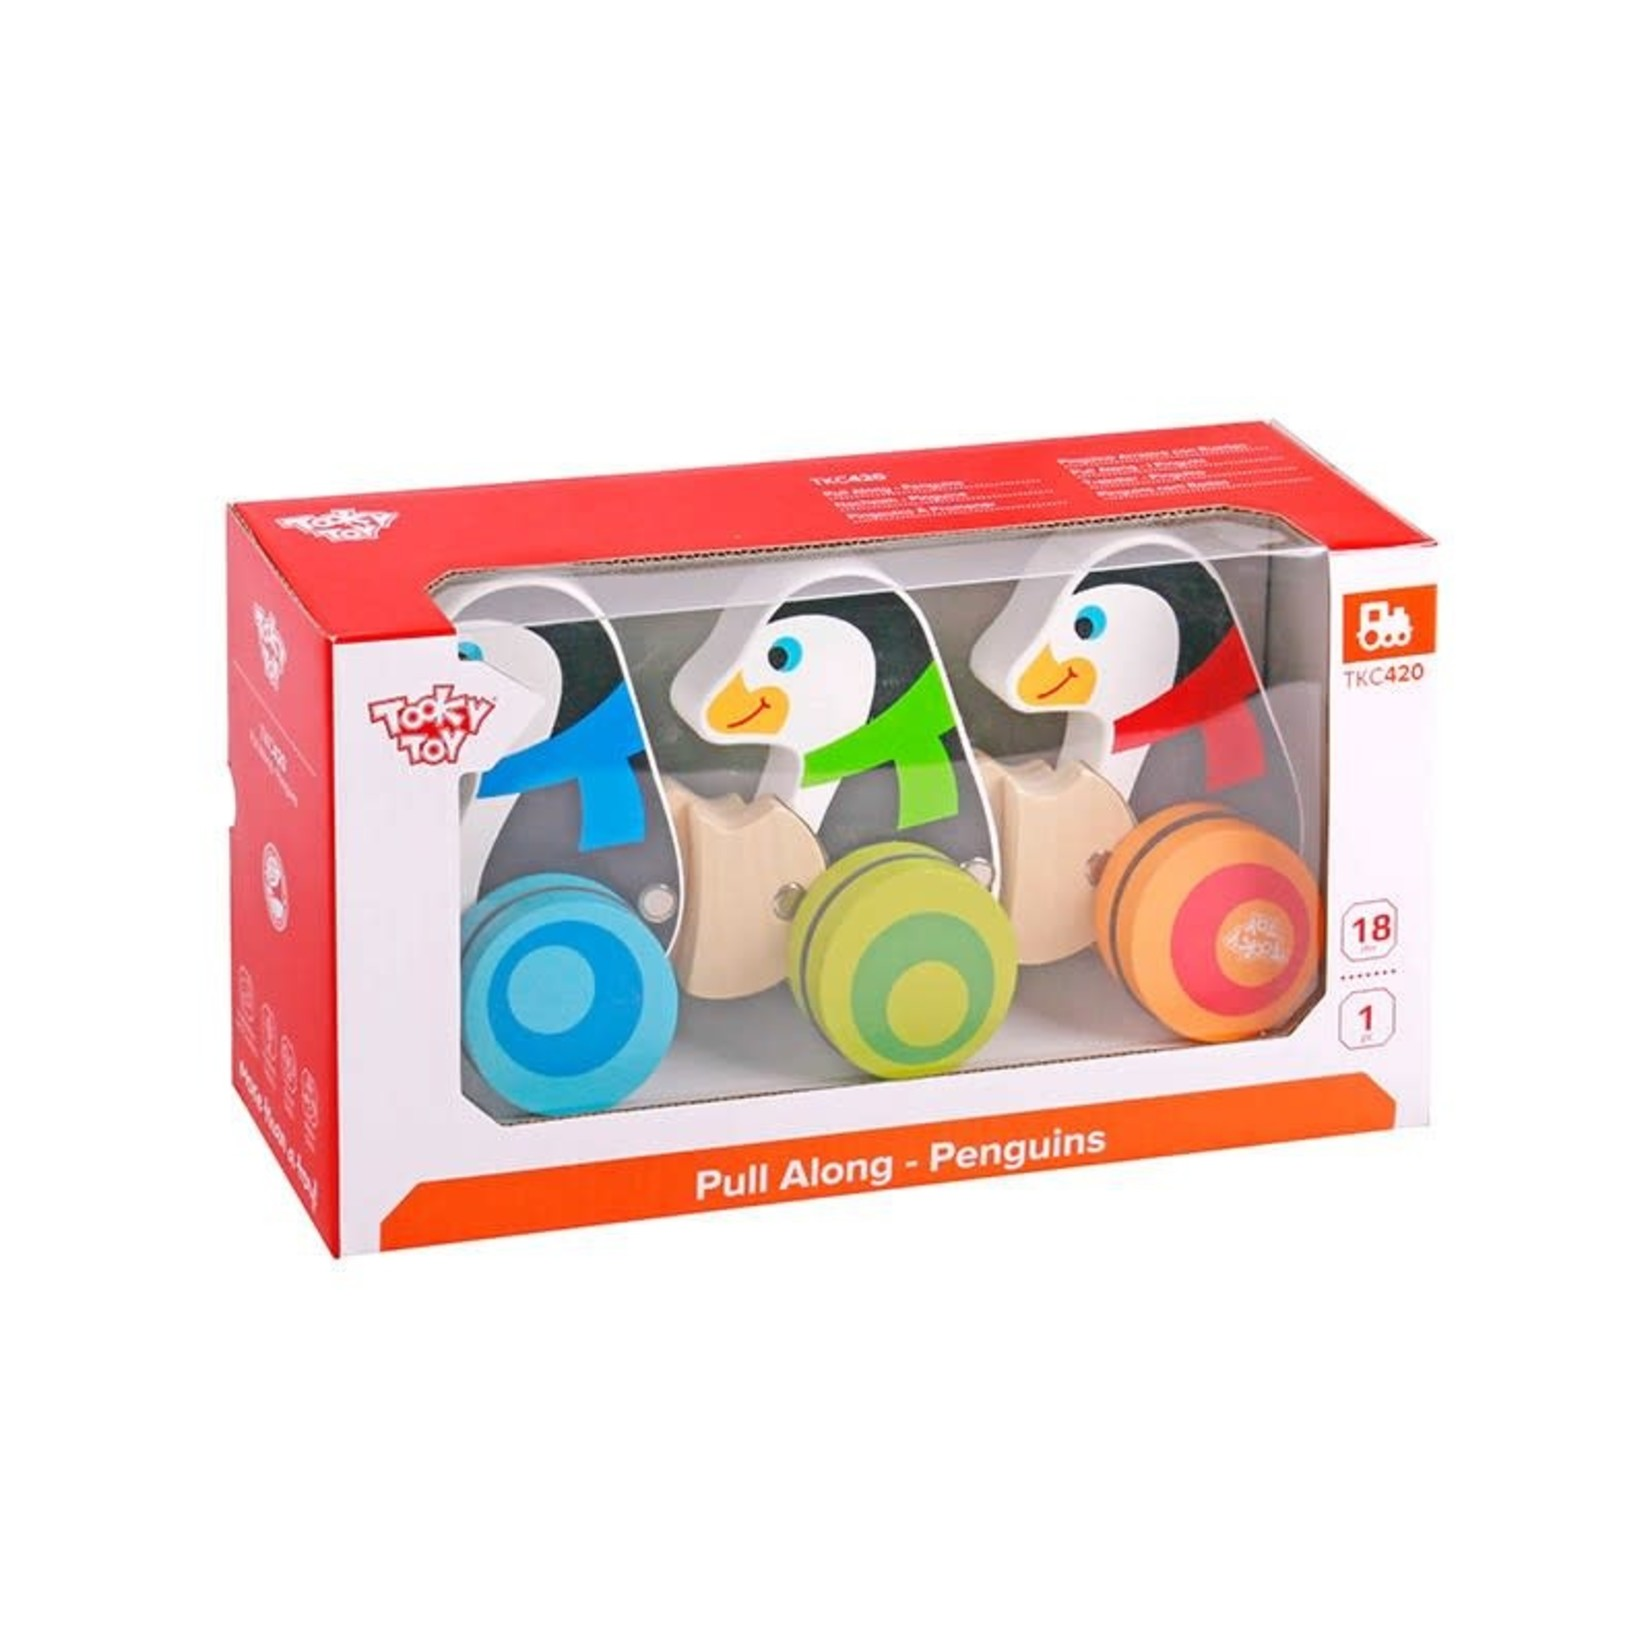 Tooky Toy Pull Along - Penguins